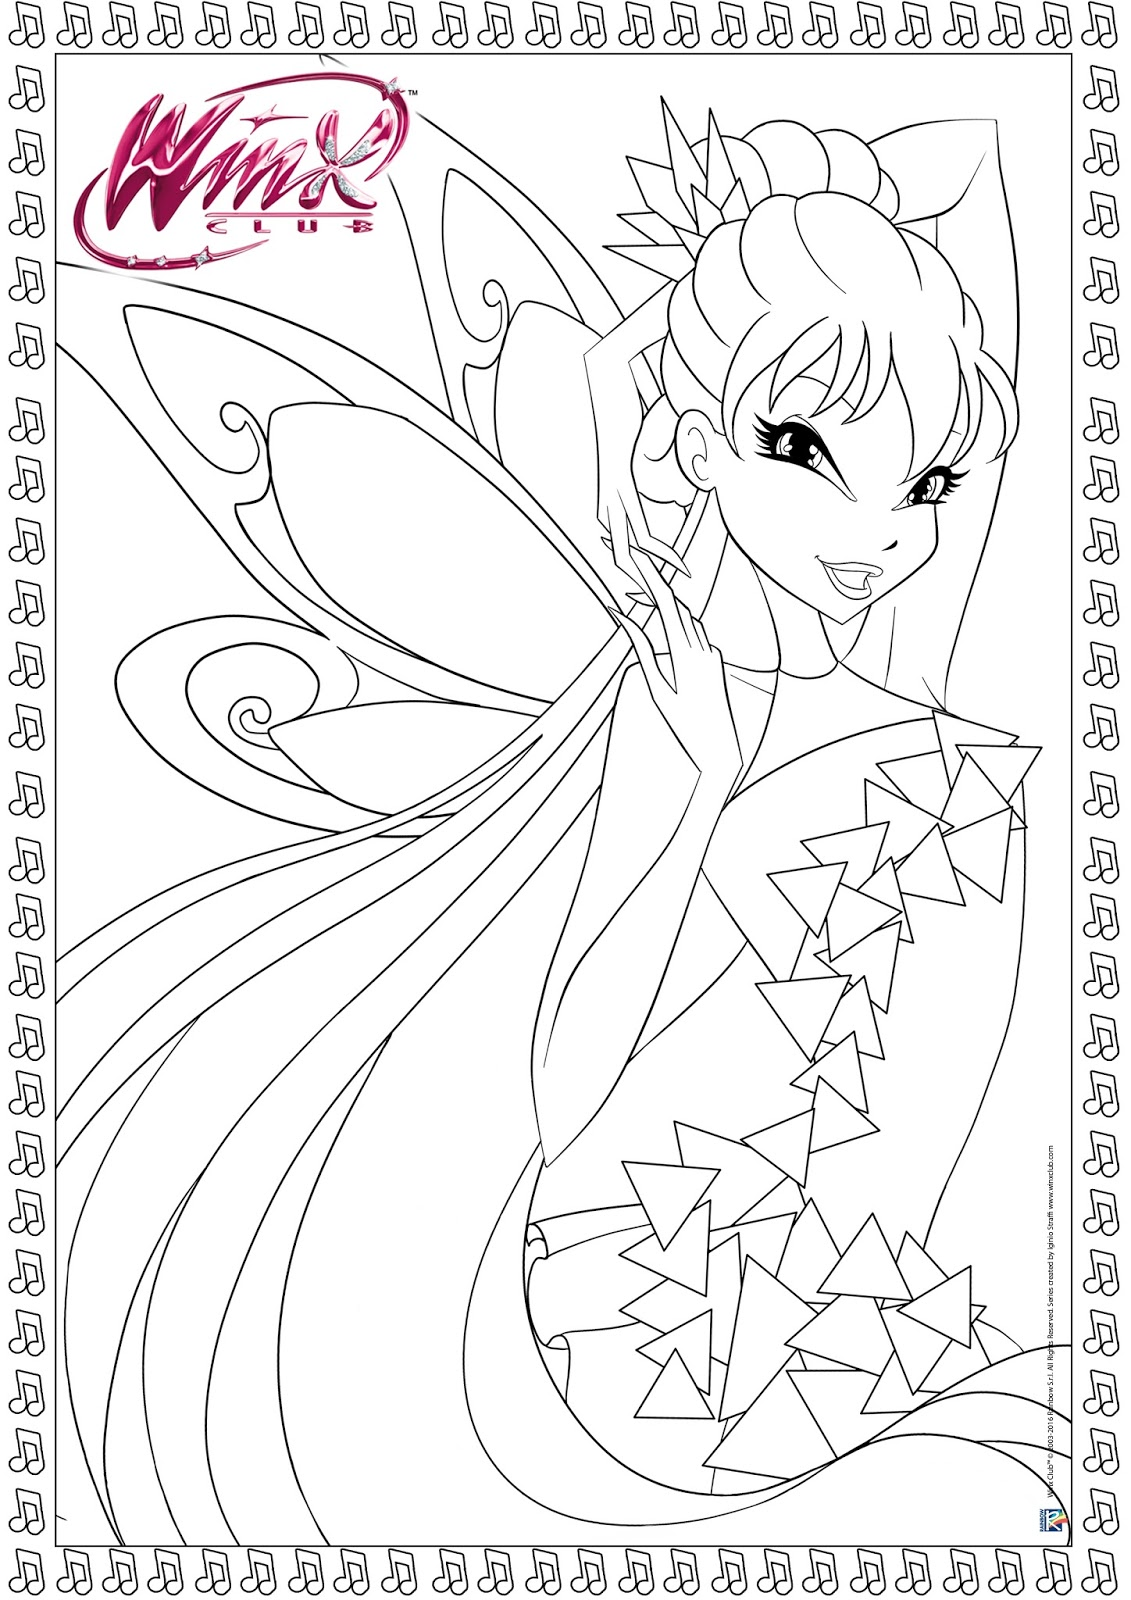 The Winx Coloring Pages